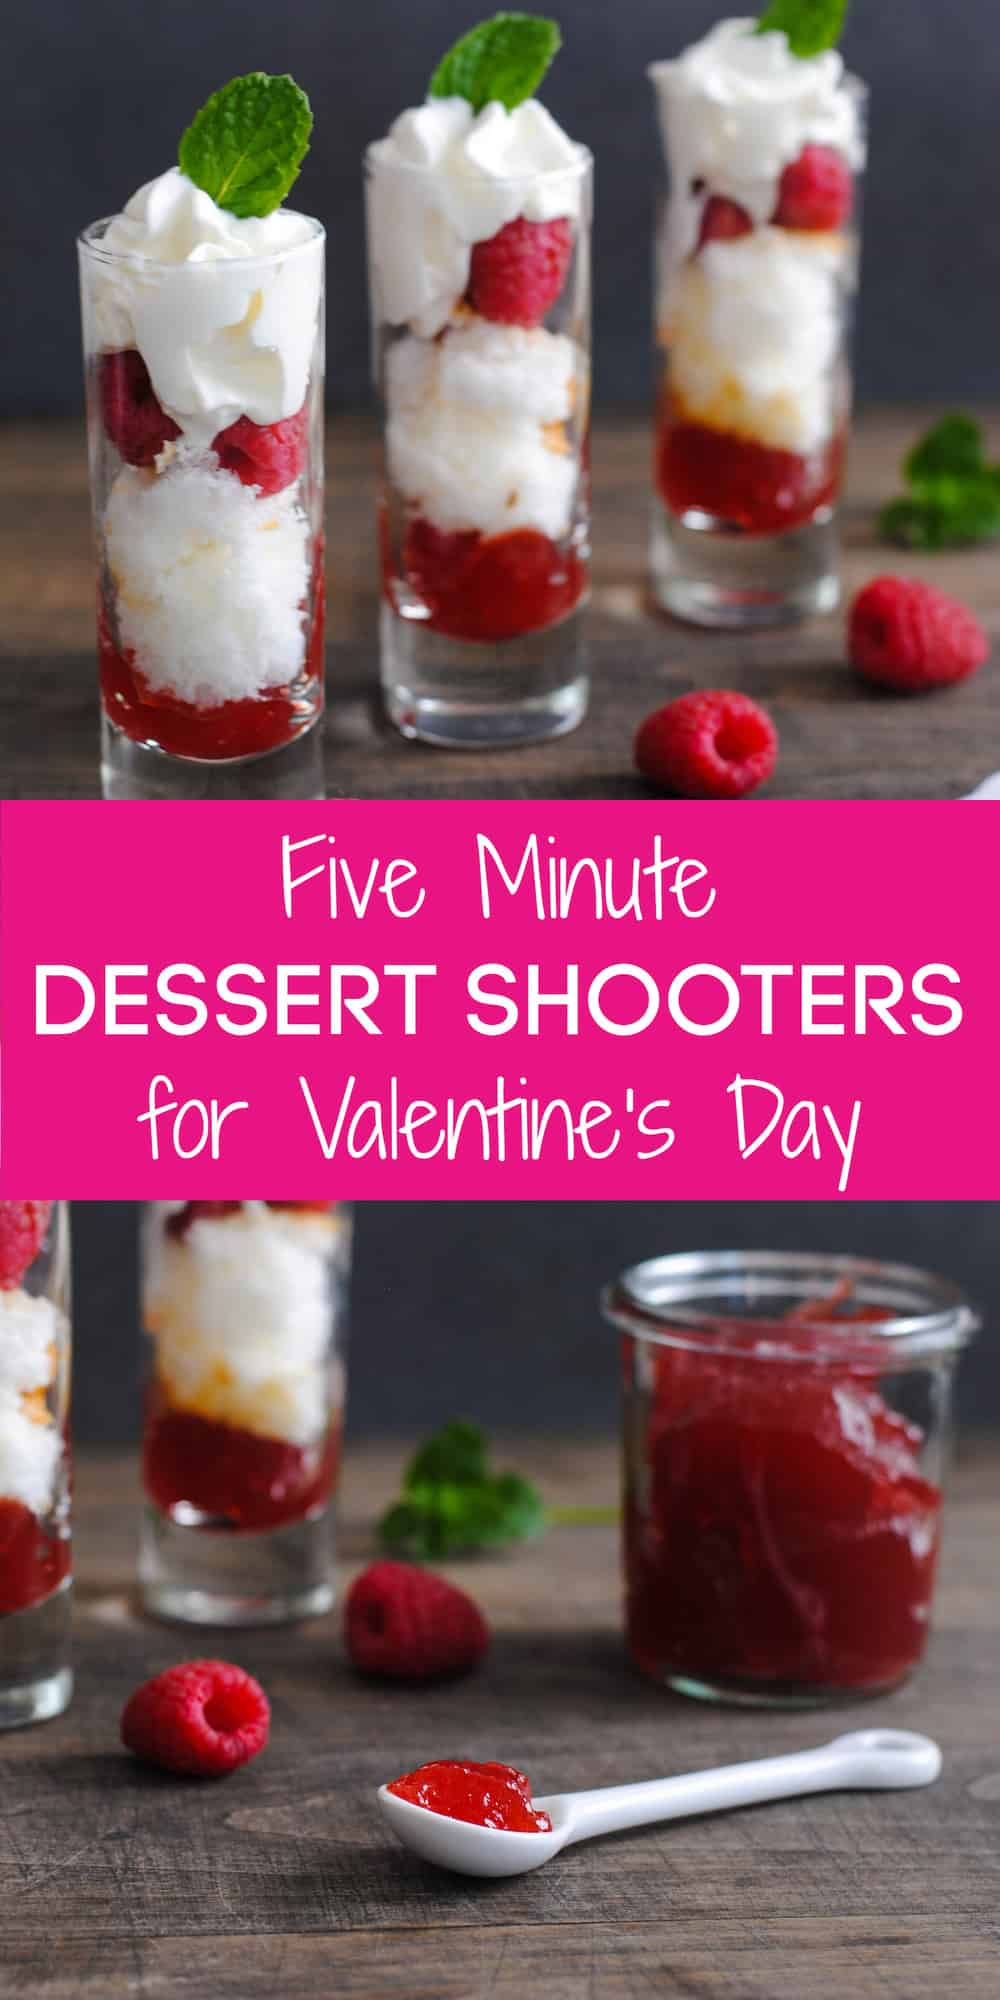 Looking for a light Valentine's Day Dessert after a decadent meal? These five minute shooters are a simple, fresh and sweet treat for your Valentine!   foxeslovelemons.com